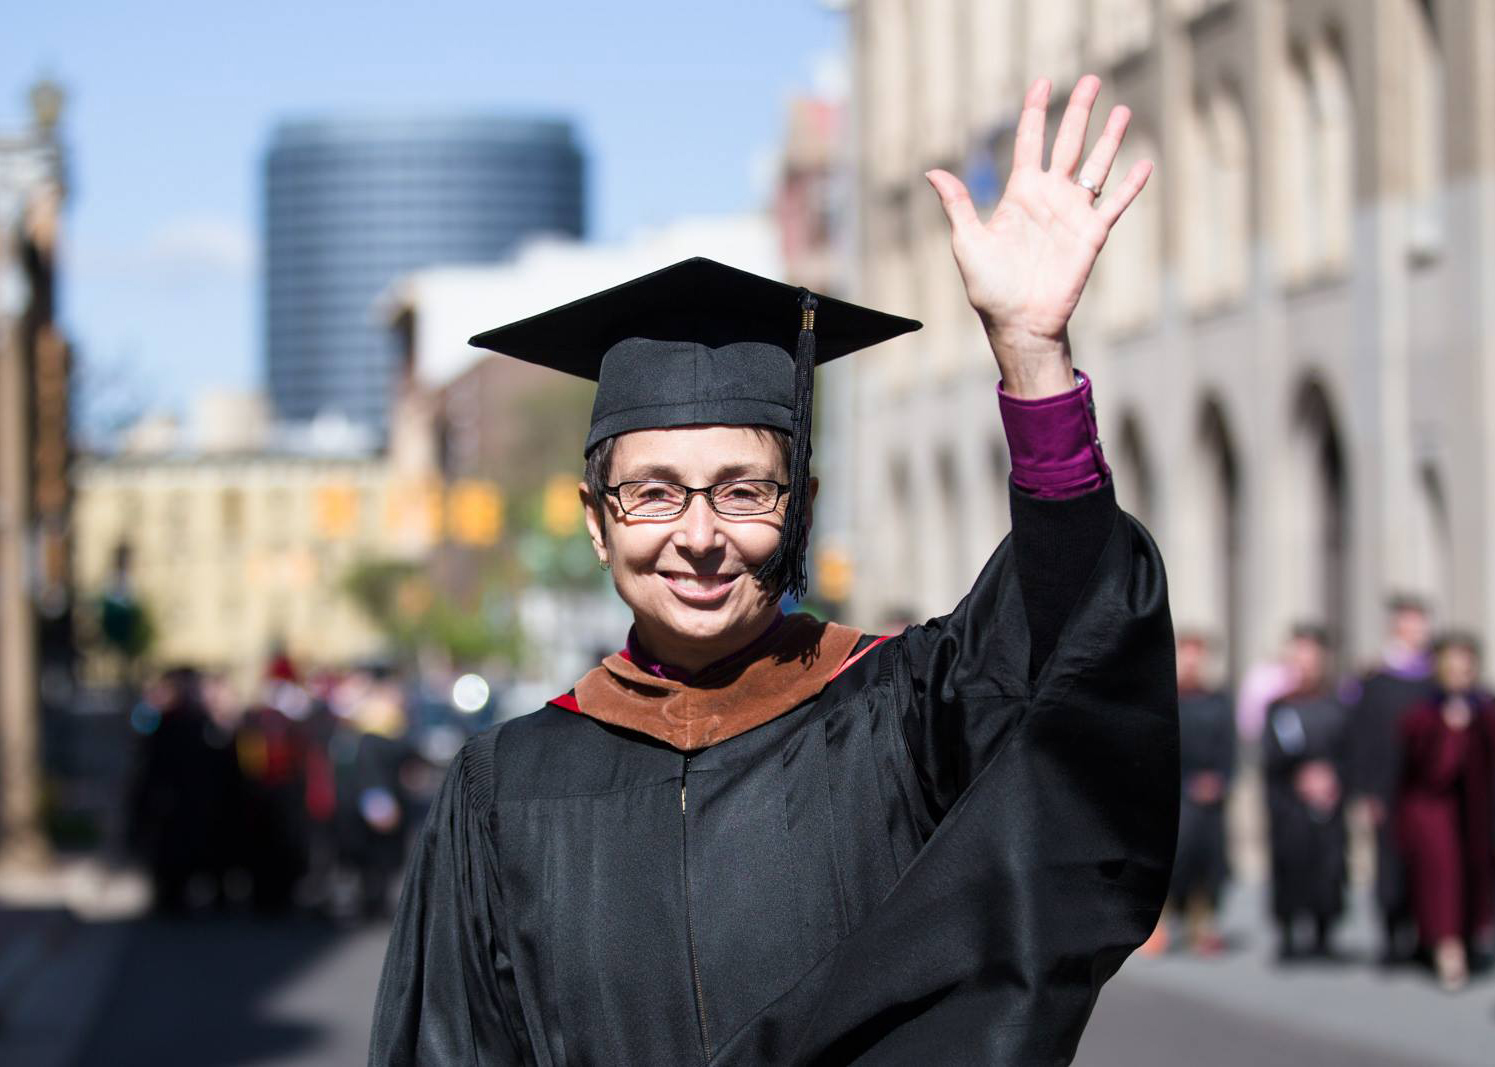 Woman in a graduation cap and gown waves at the camera